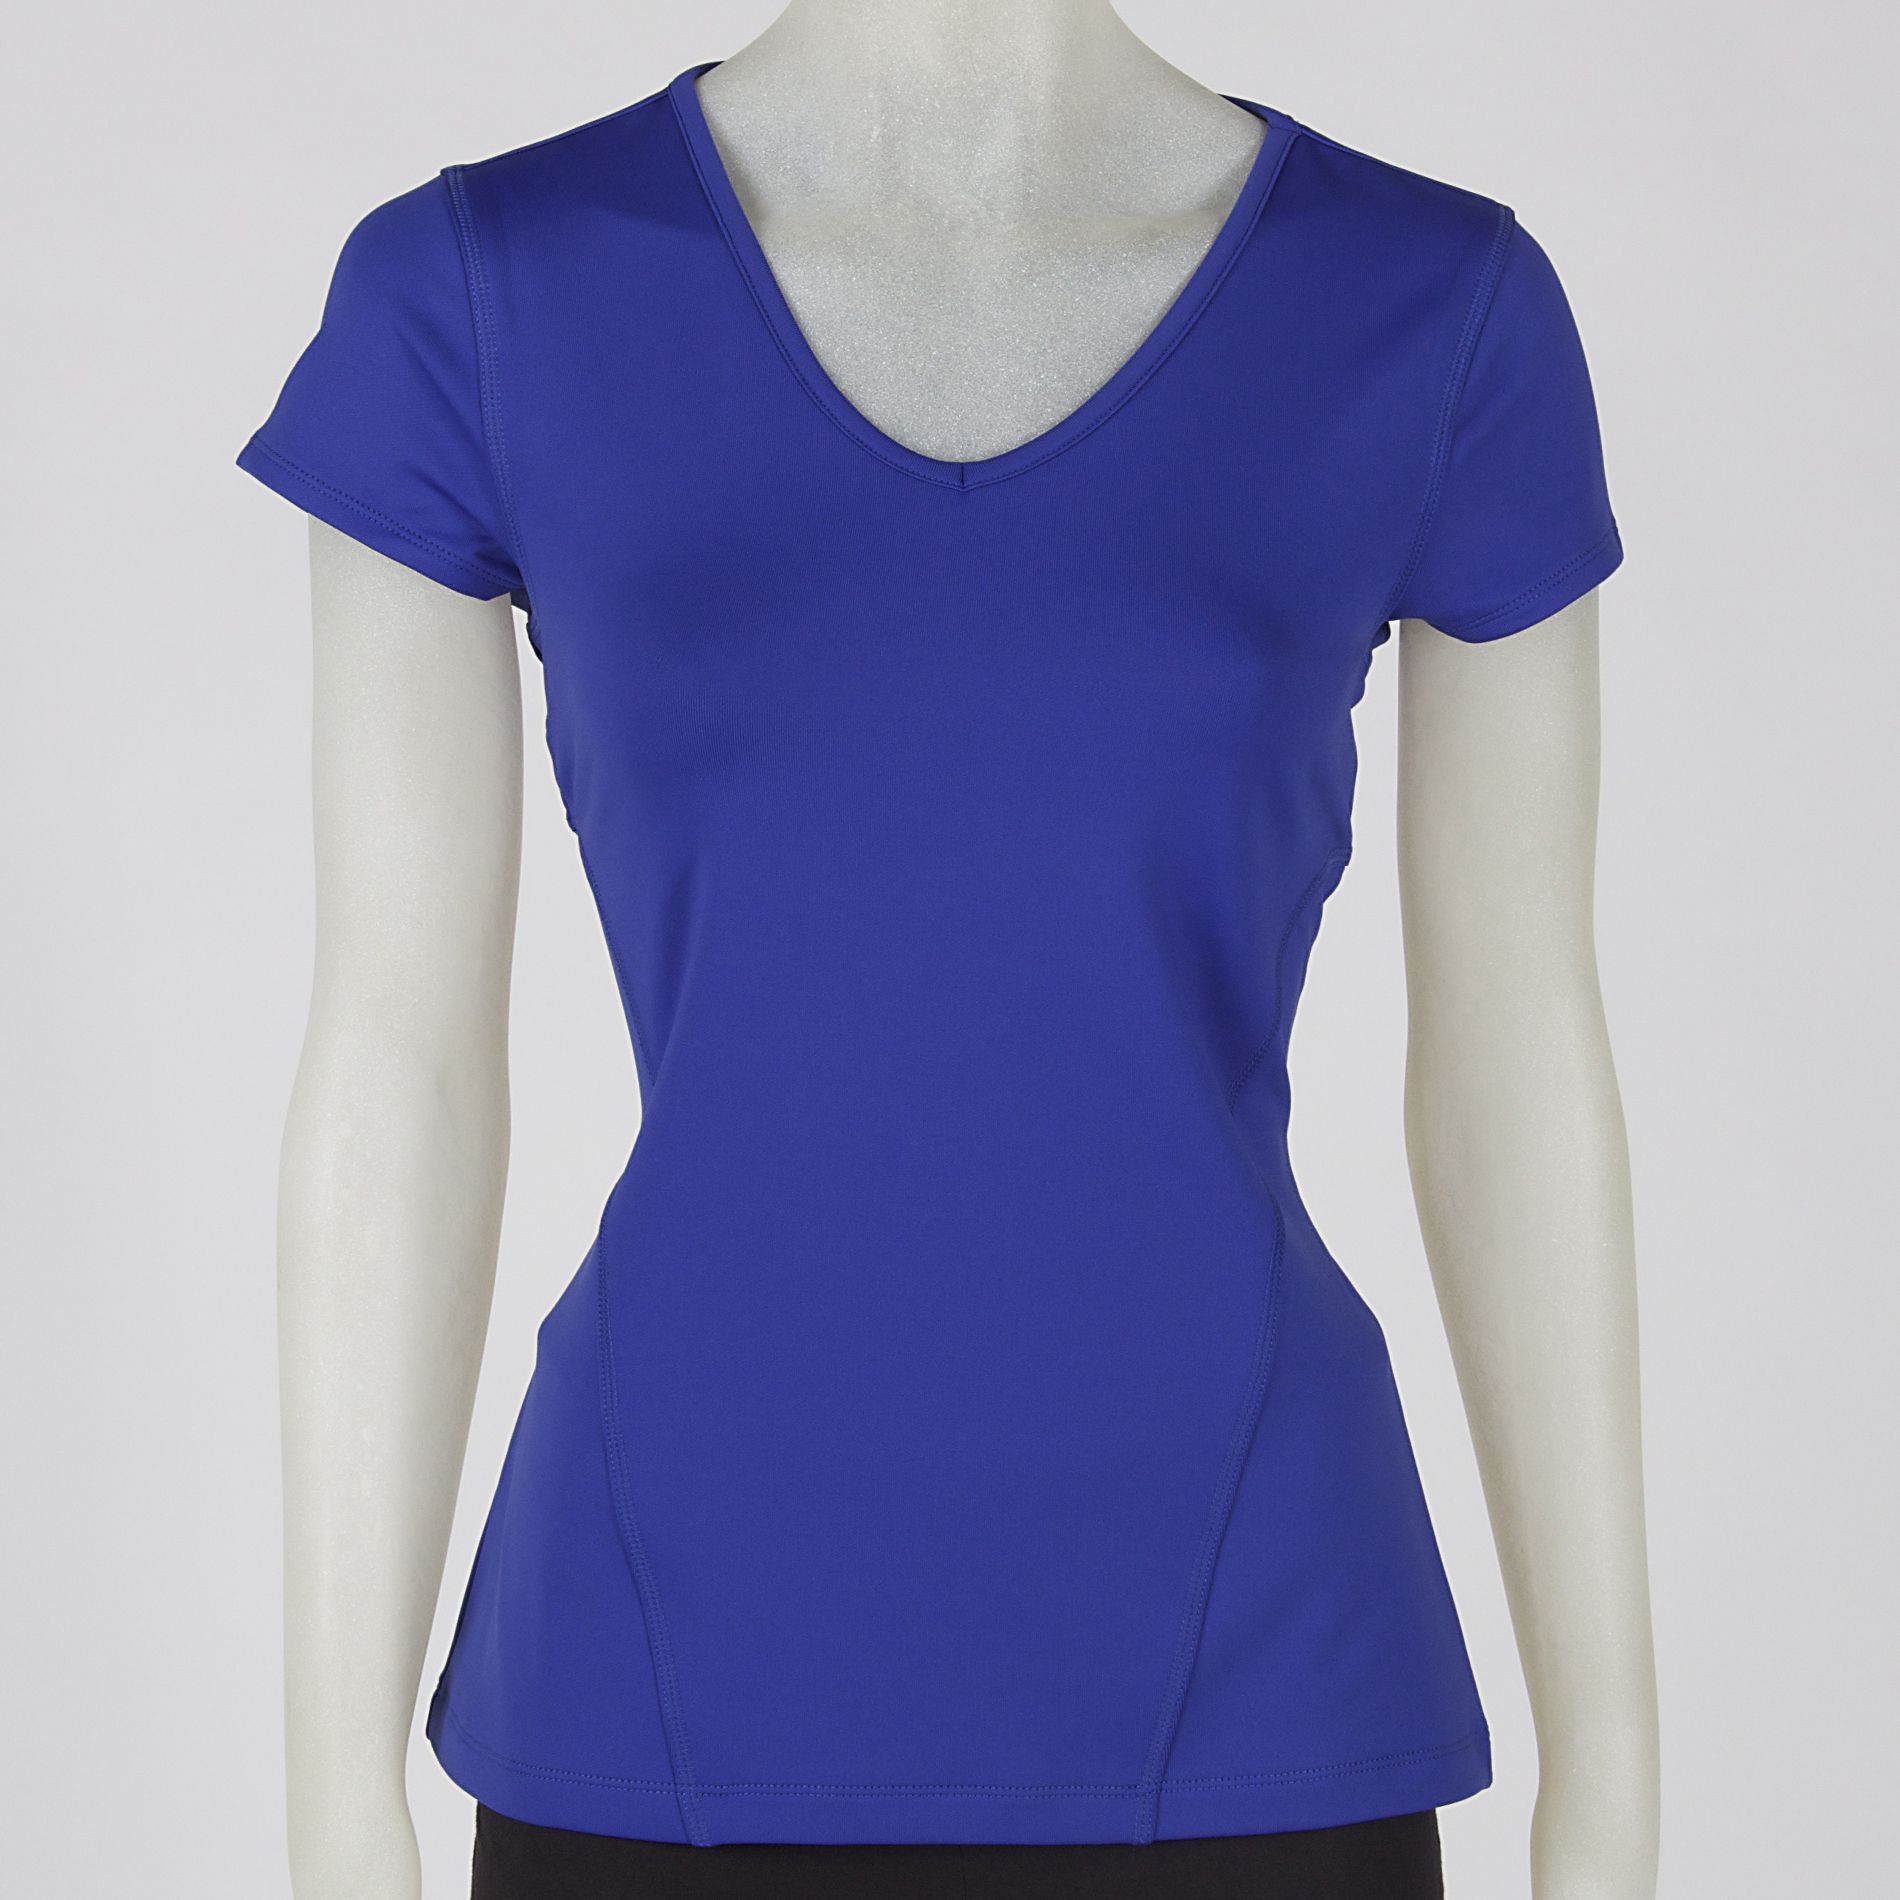 Everlast® Women's T-Shirt Short Sleeve Mesh Insert at Sears.com